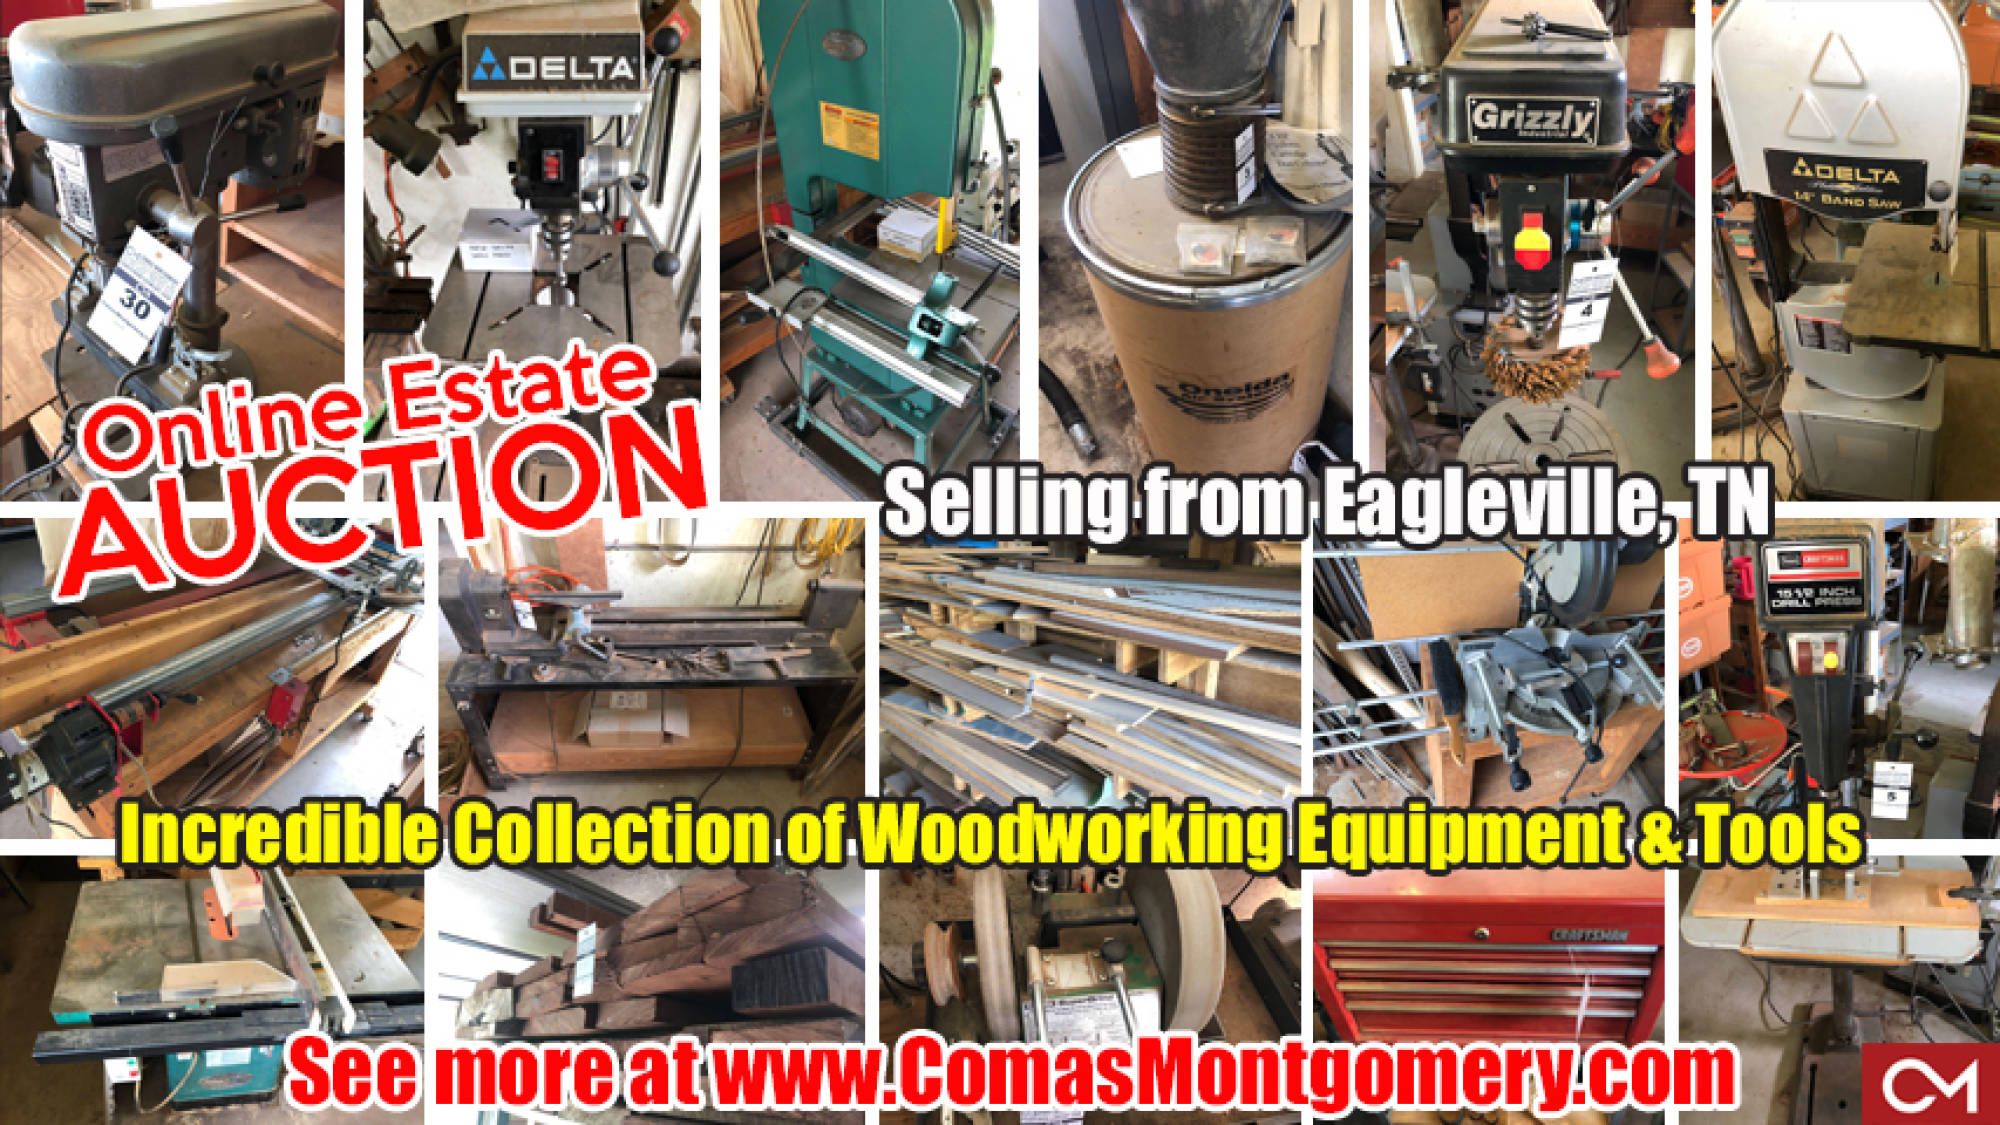 Woodworking, Tools, Equipment, For Sale, Lathes, Grinders, Hand Tools, Auction, Estate, Sale, Comas, Montgomery, Eagleville, Tennessee, Lynch, Legacy, Grizzly, Oneida, Delta, Rockwell, Dayton, Wilton, Tormek, Wood, Lumber, Craftsman, Craft, Hardware